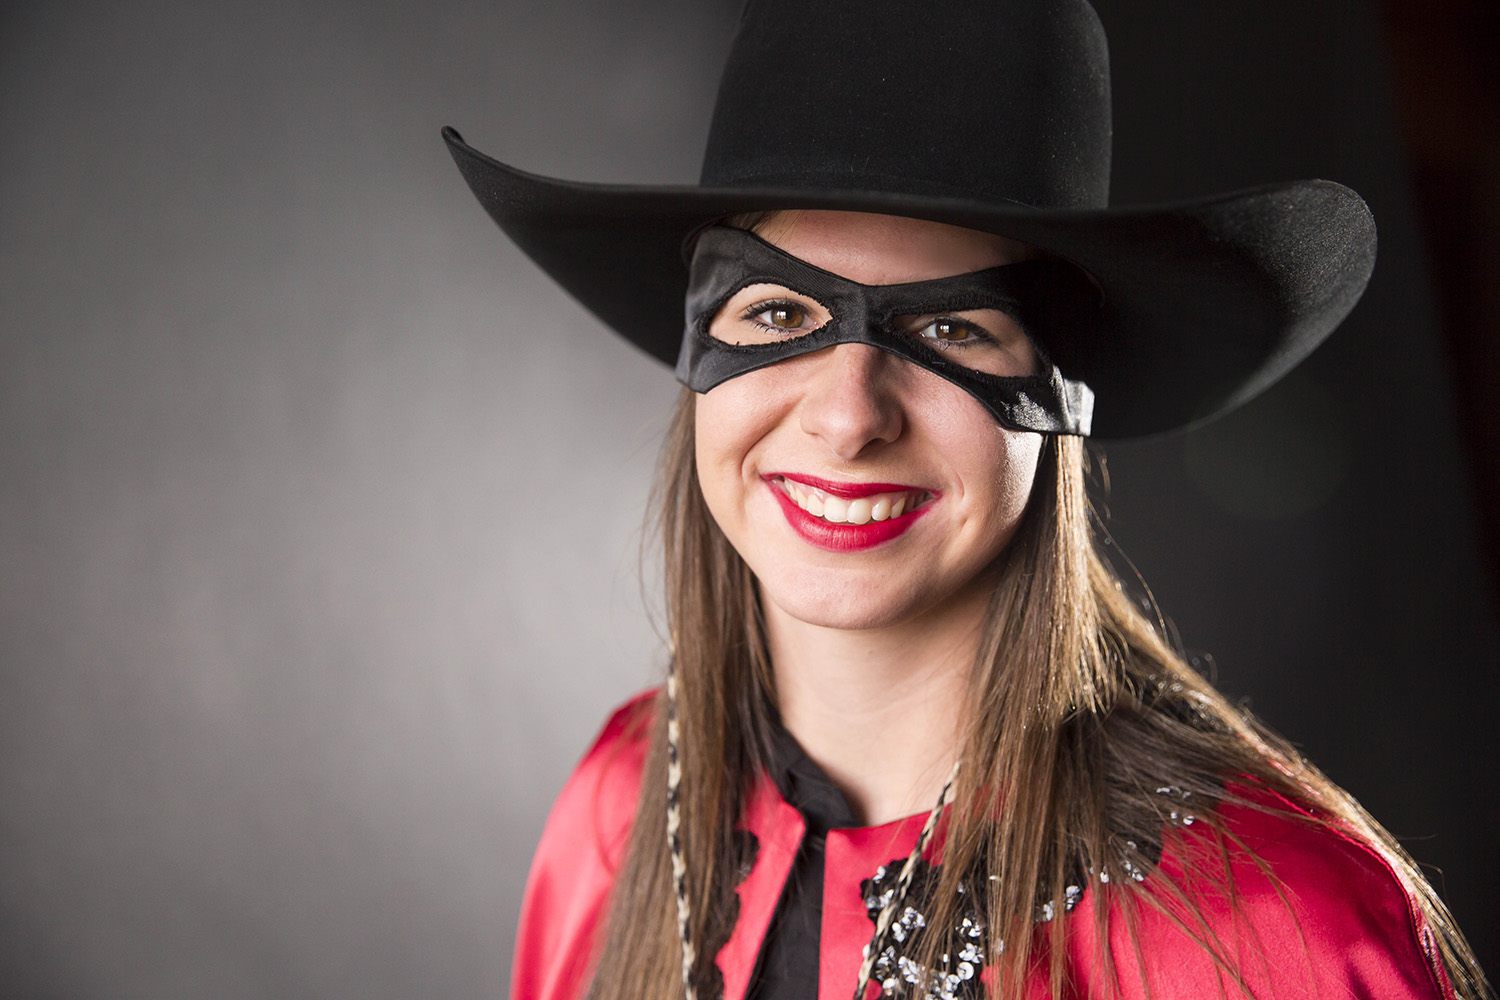 Texas Tech Names New Masked Rider for 2018 19 School Year | Texas